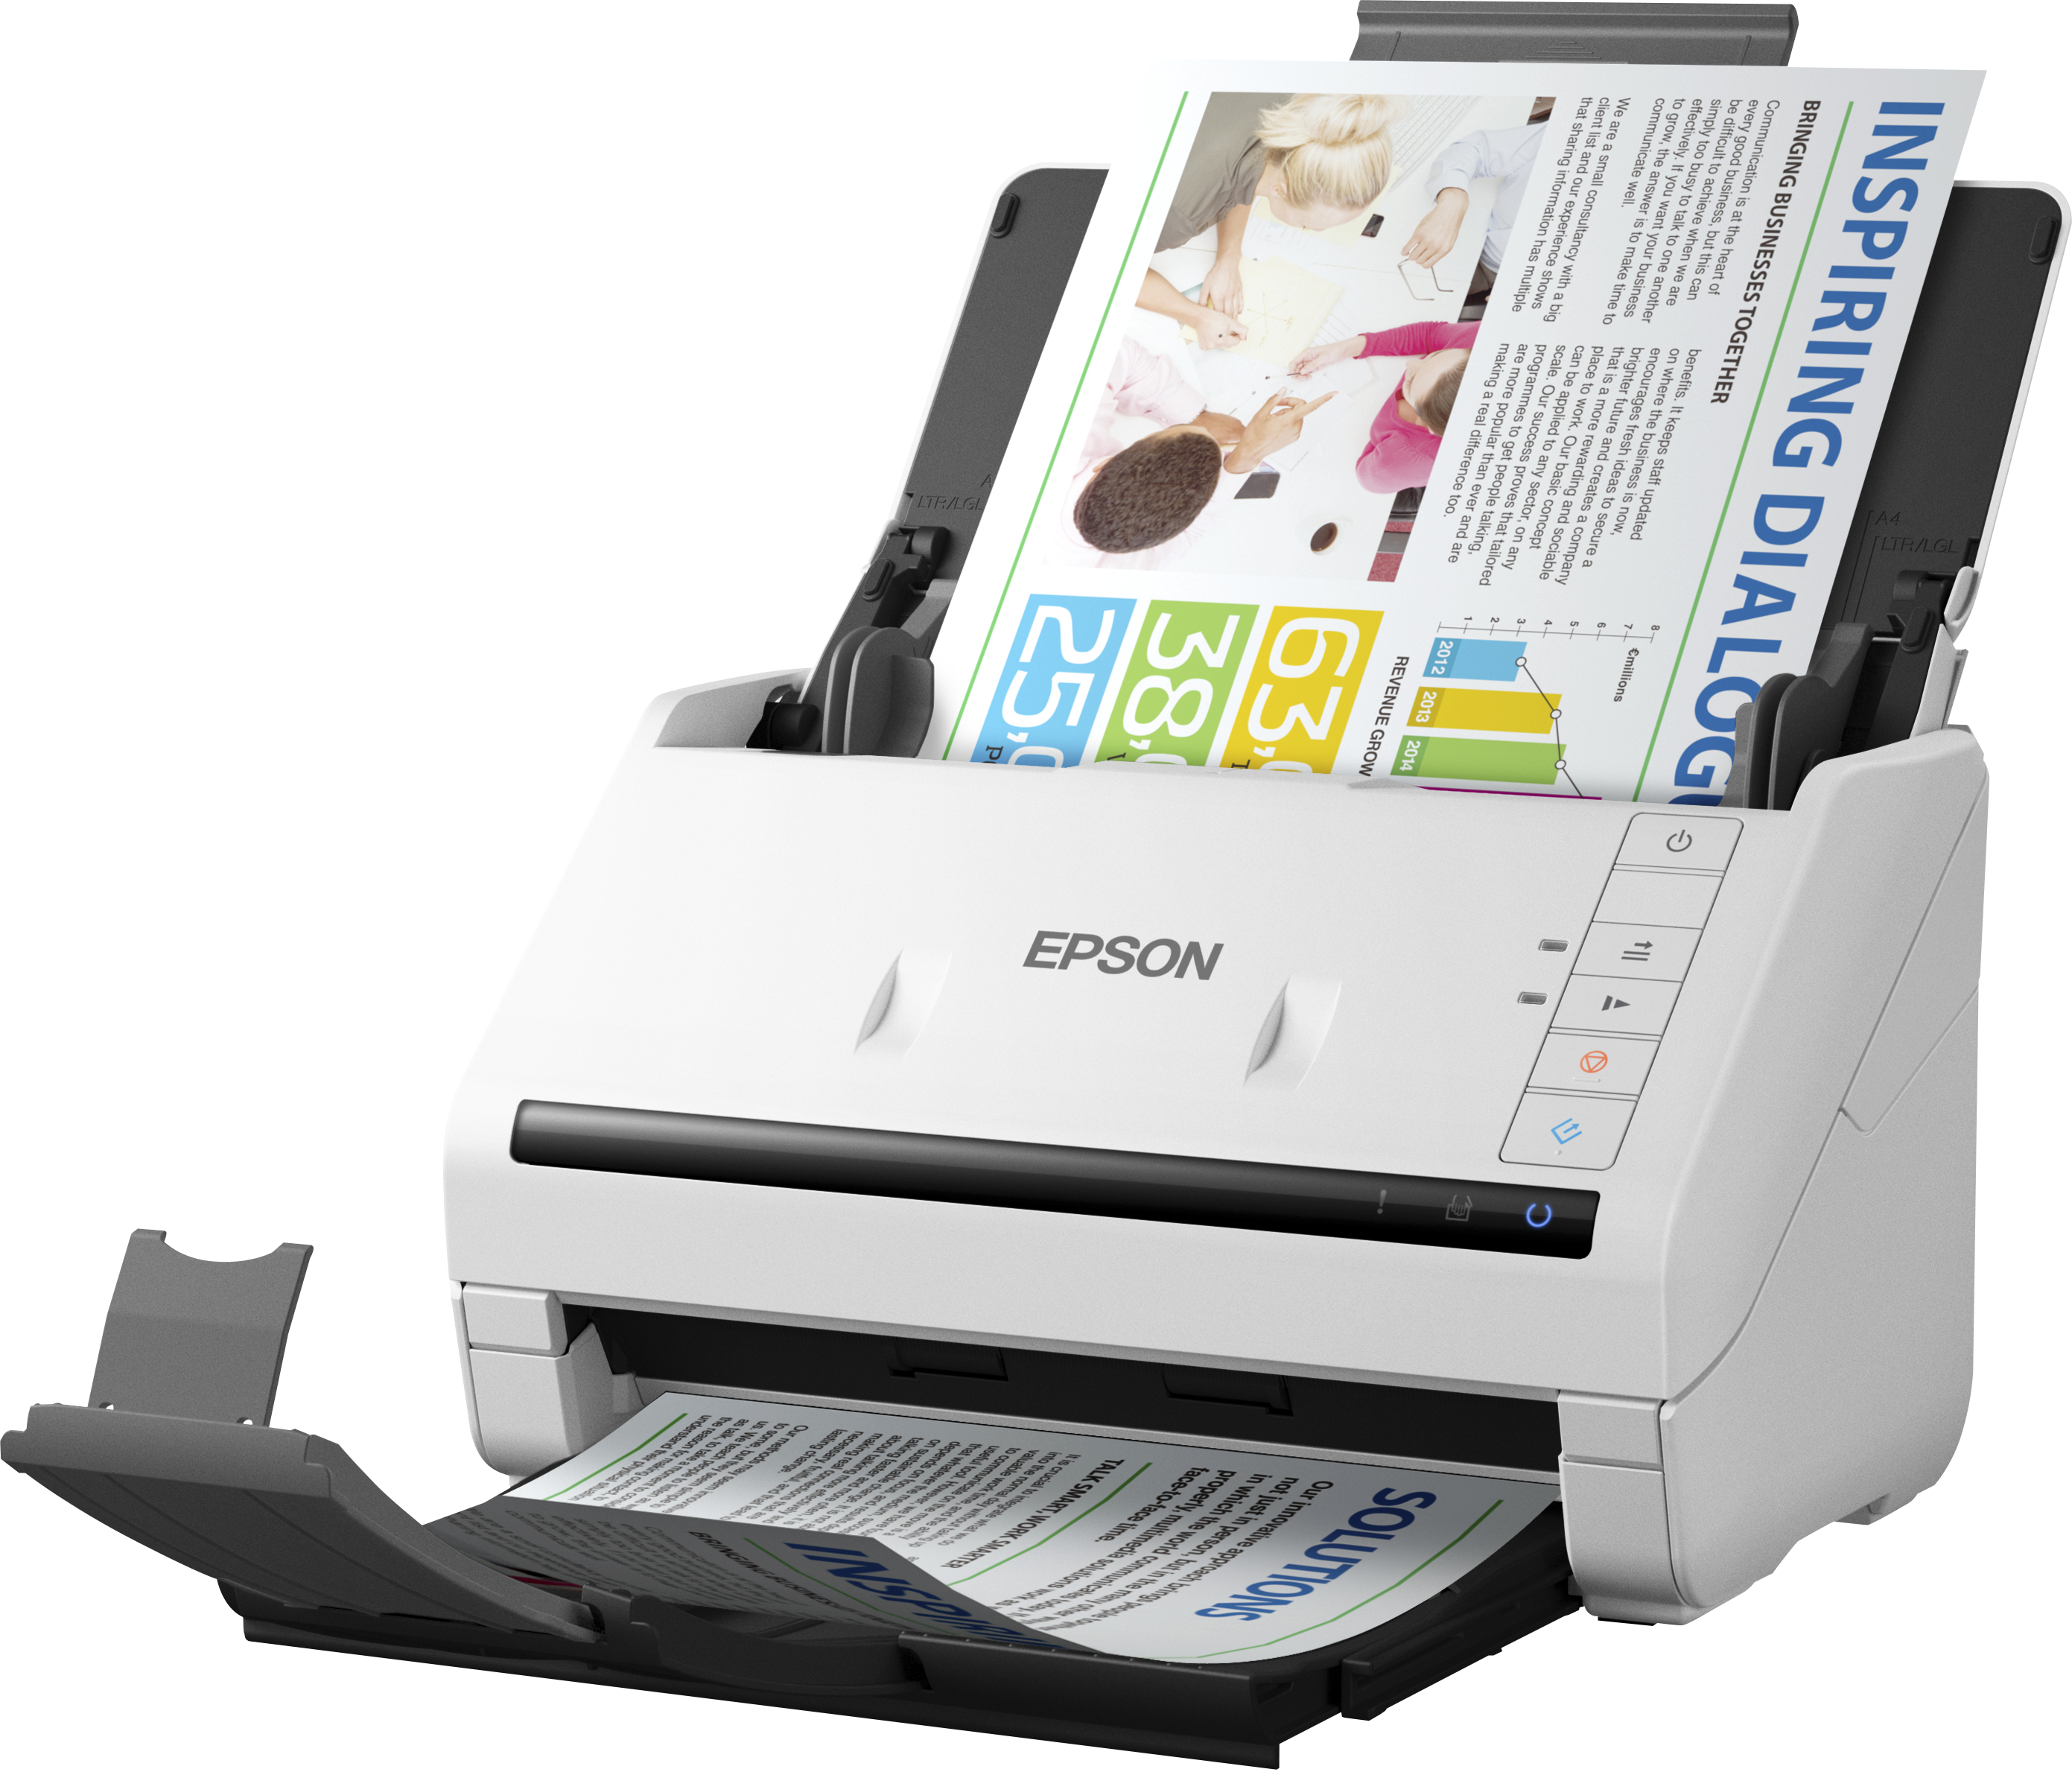 Epson WorkForce DS-530, A4, 600dpi, ADF, USB